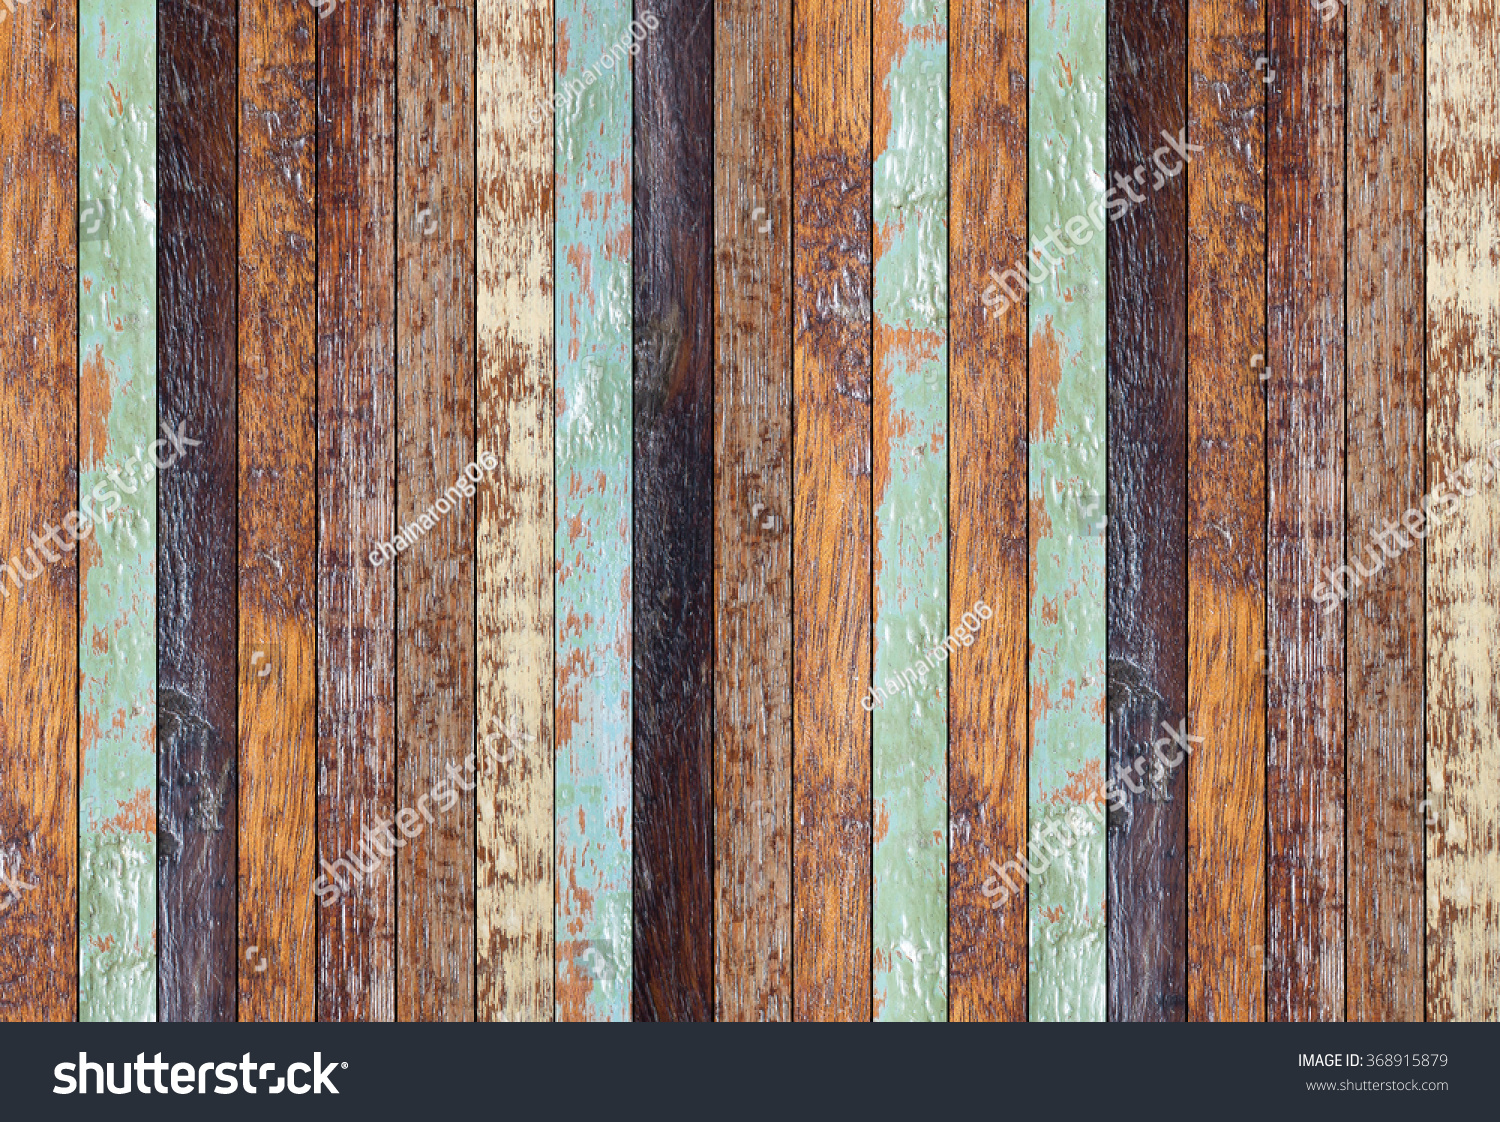 Marvelous photograph of vintage aged wooden coarse texture:retro wooden panel walls  with #965F35 color and 1500x1122 pixels